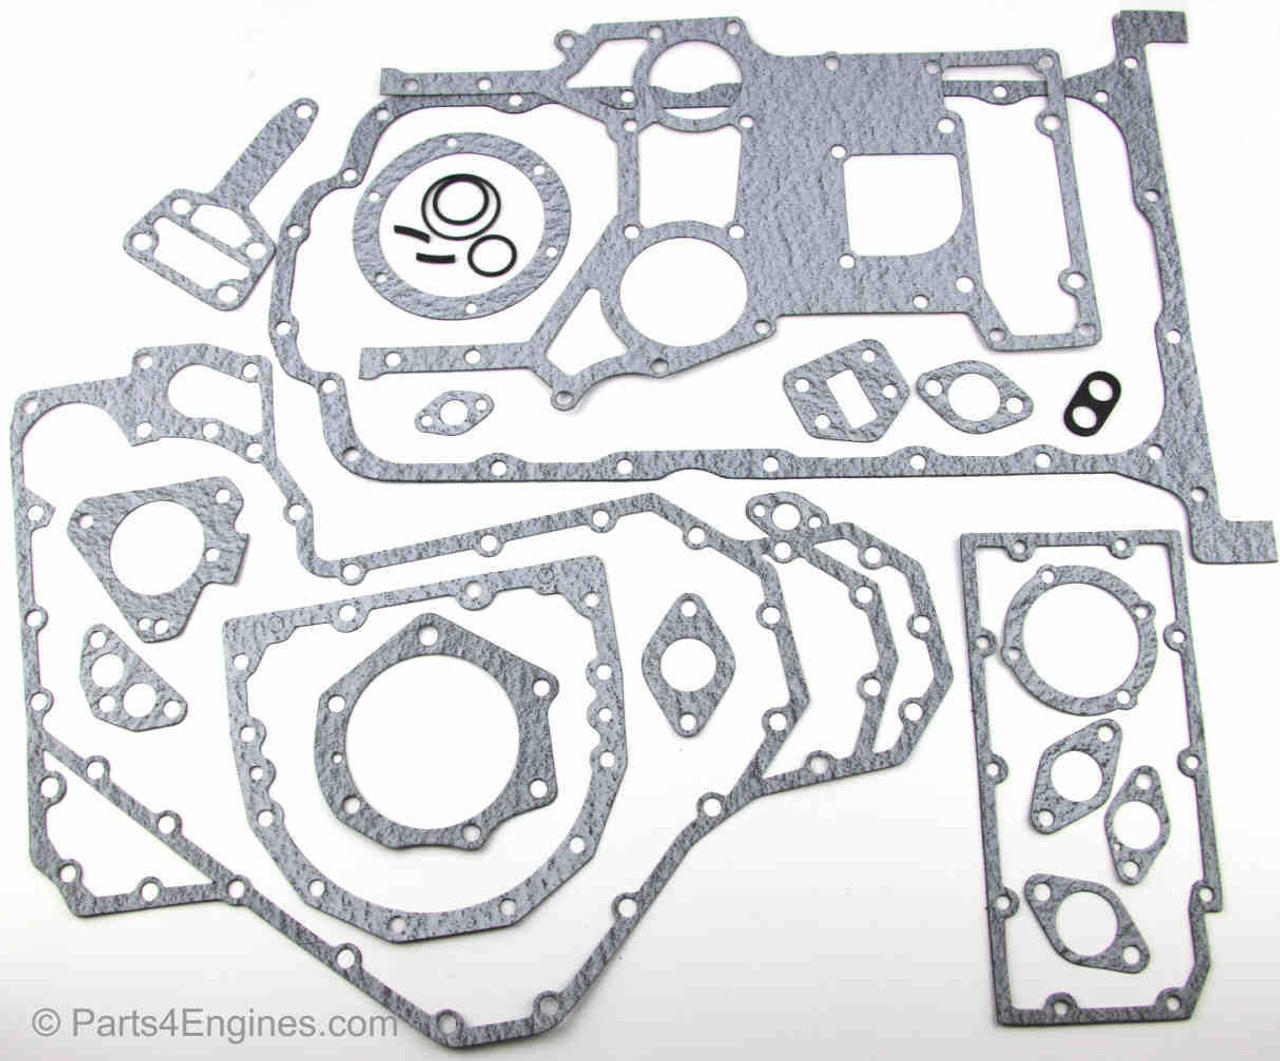 Perkins Phaser 1004 Bottom Gasket Set from parts4engines.com